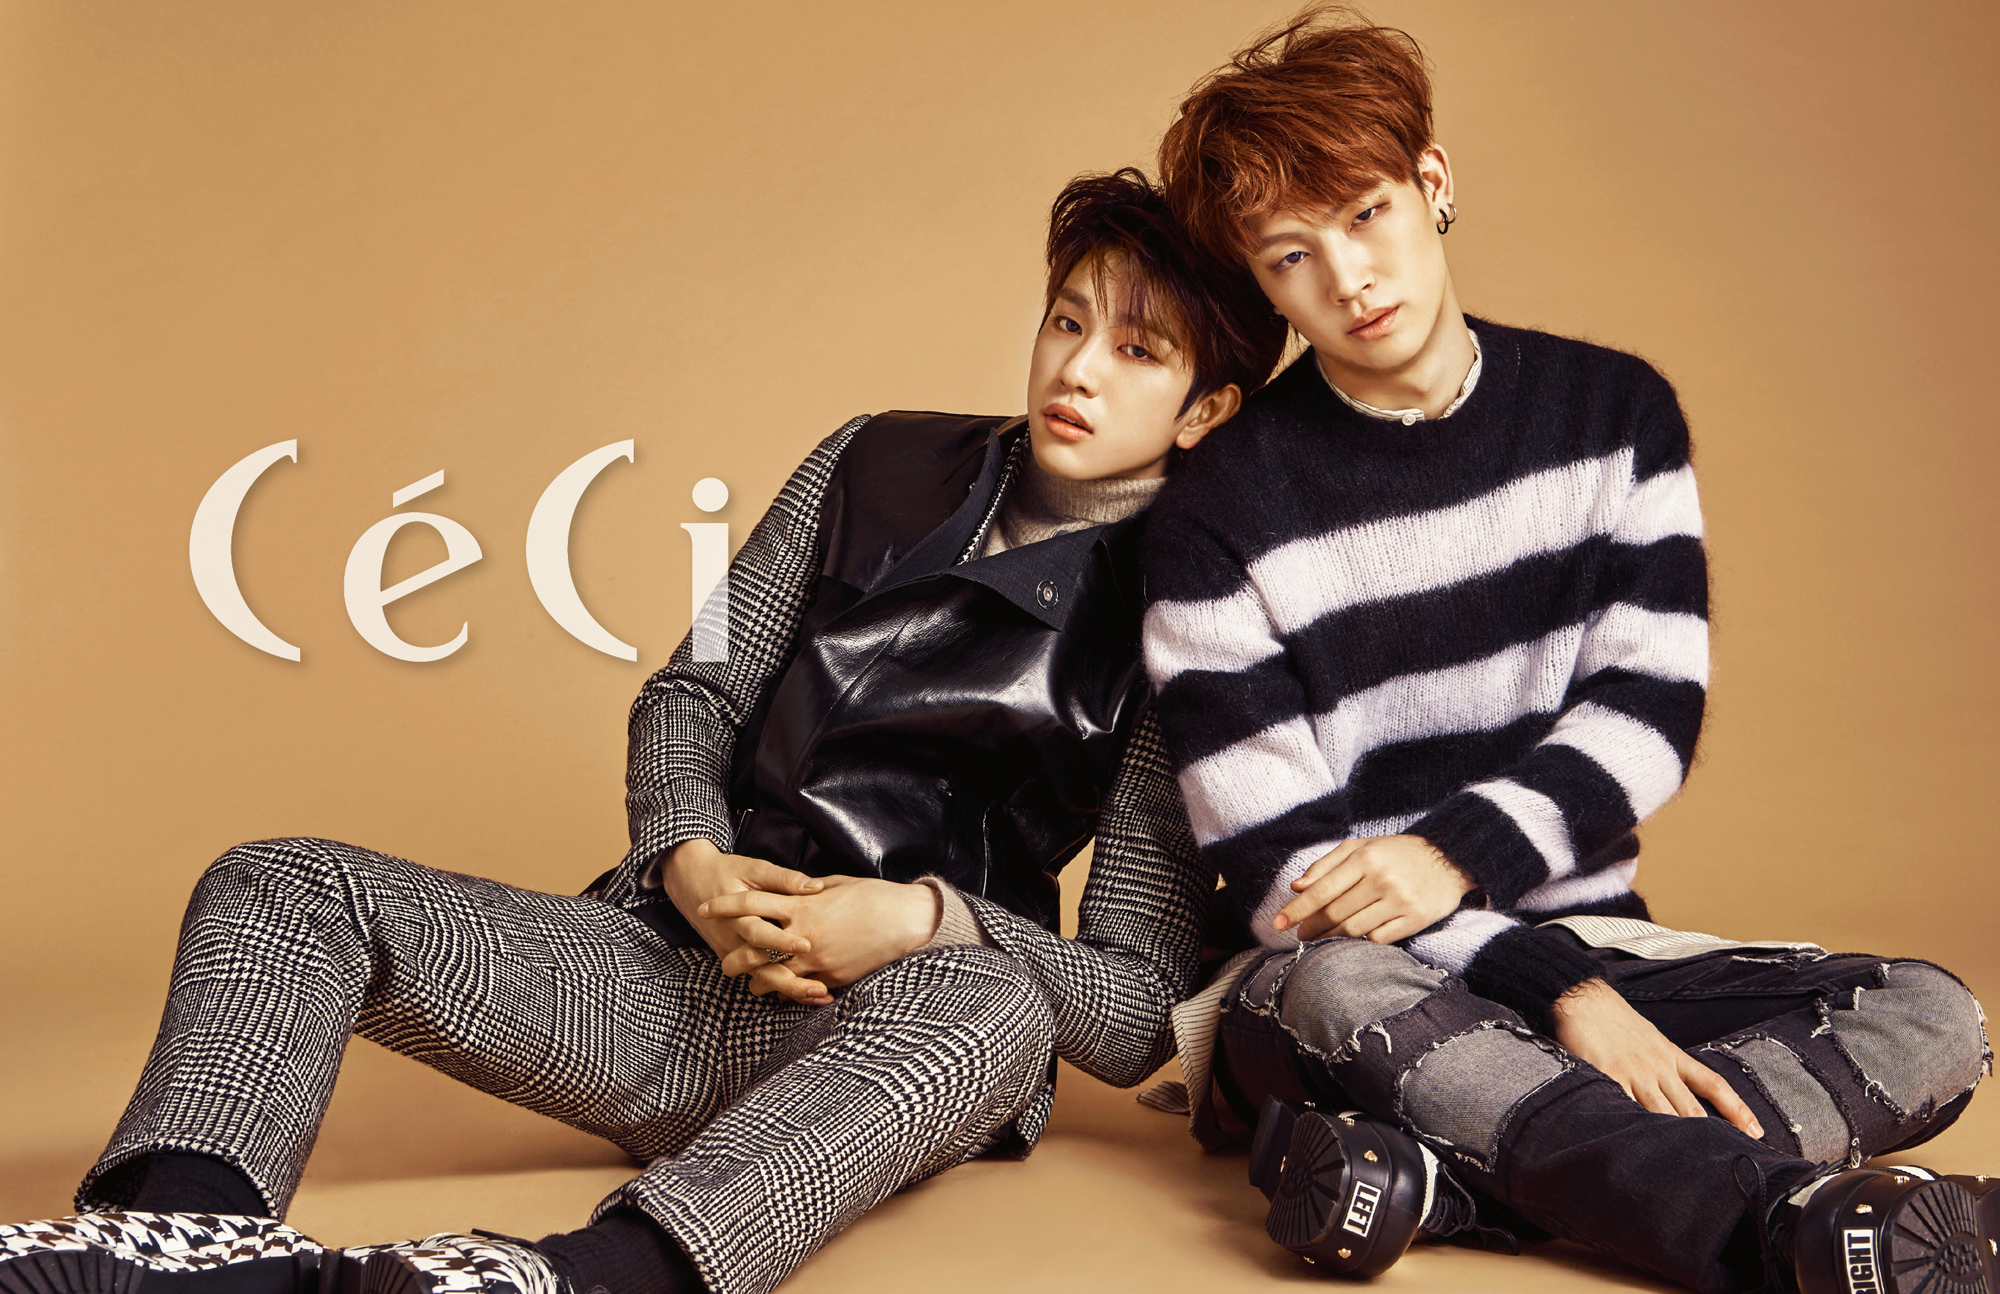 GOT7's JB and Junior Pair Up as a Hot Duo for CeCi